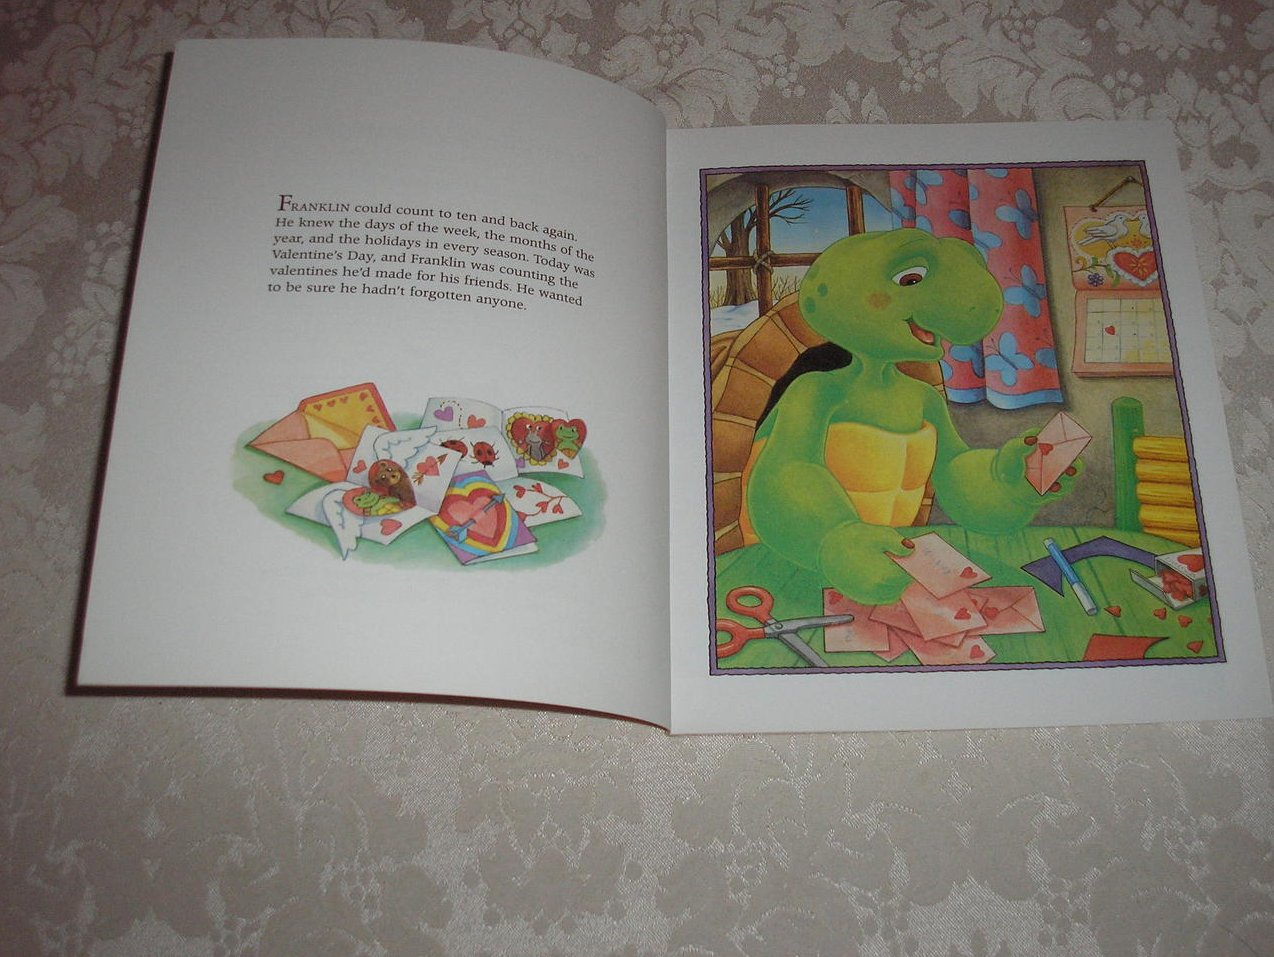 Image 2 of Franklin's Valentines Paulette Bourgeois Like New Softcover